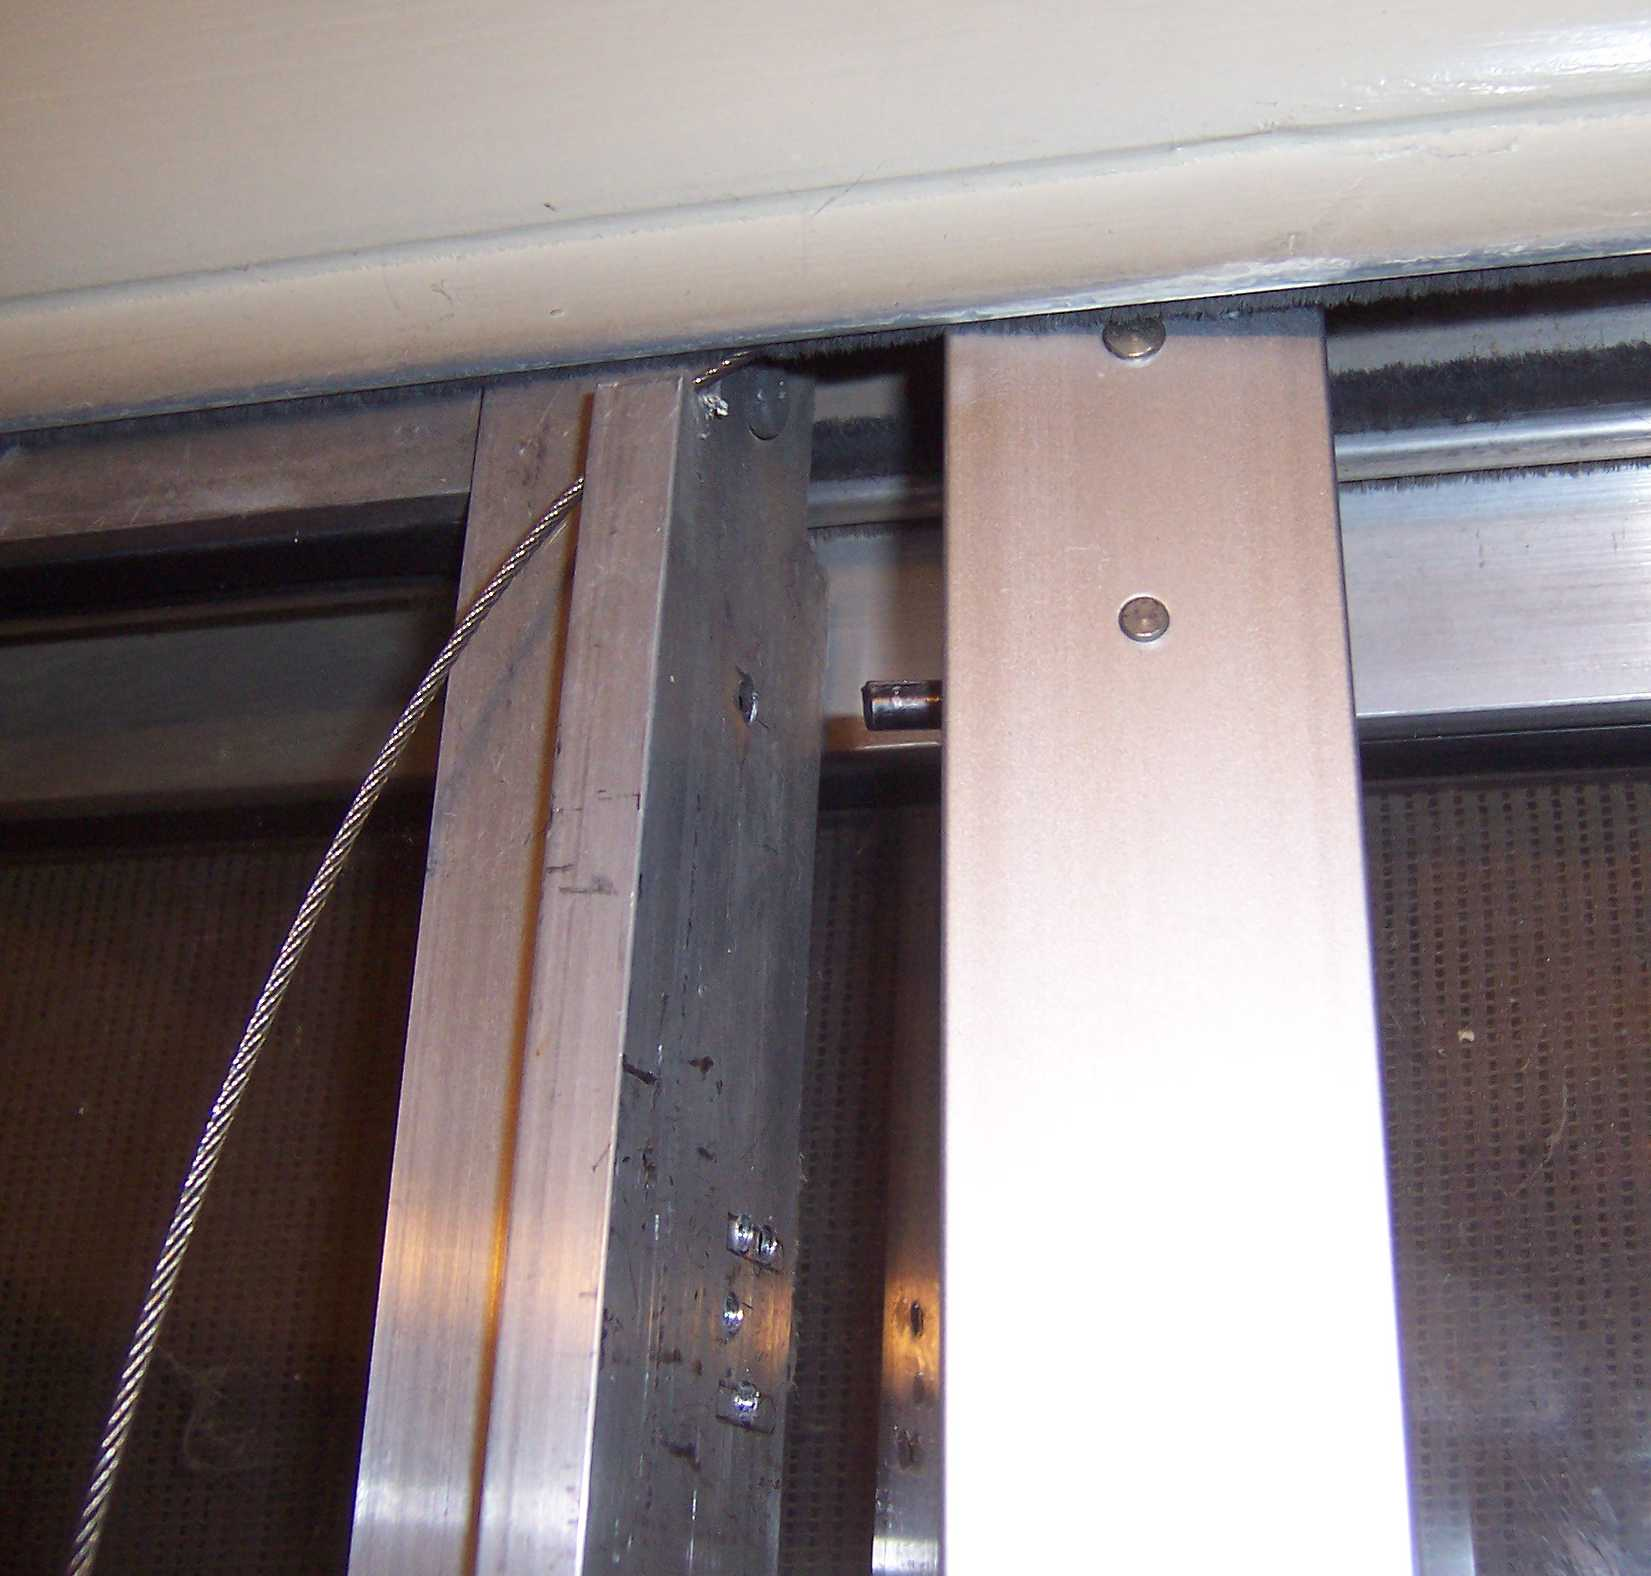 High Quality Door Closer. Typical Installation. Klozit_laptop005005  Klozit_laptop005004 Klozit_laptop005003 ...